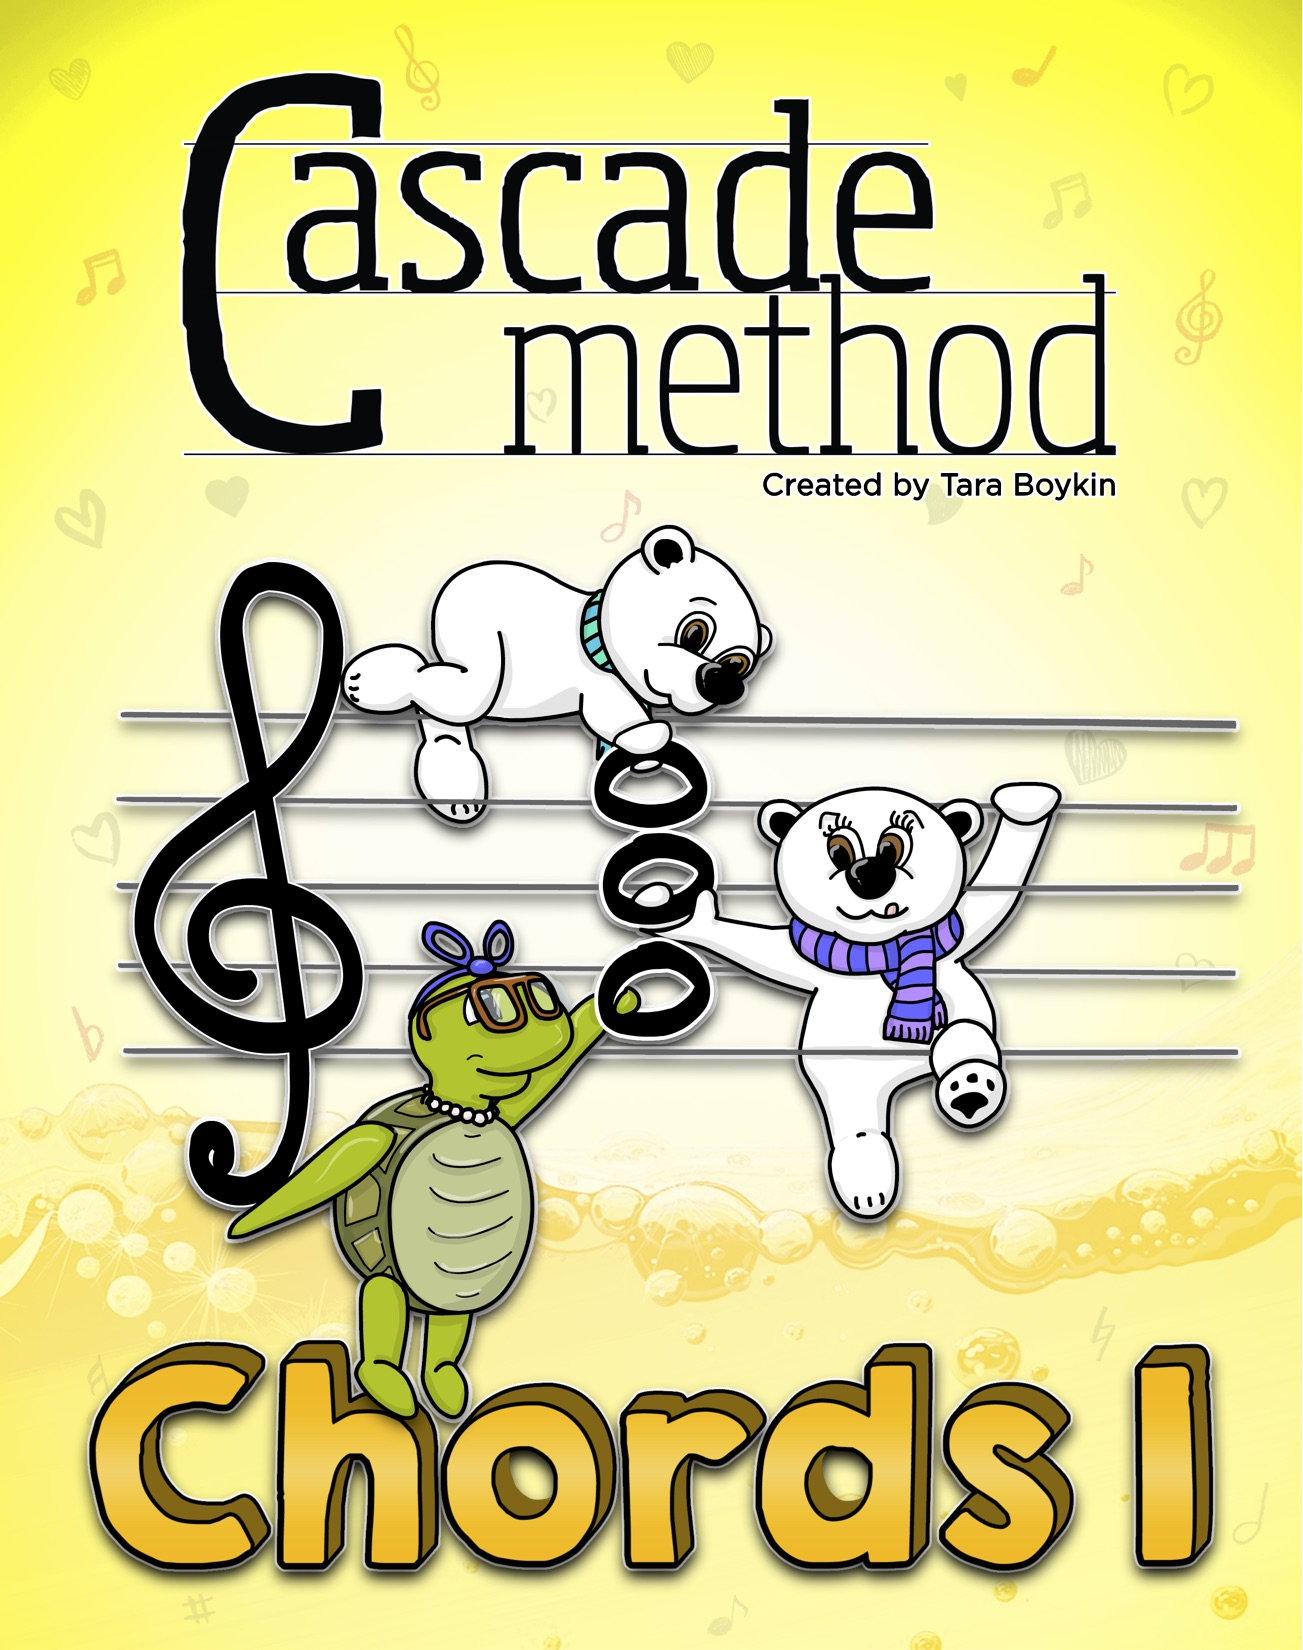 Chords 1 Book Cover